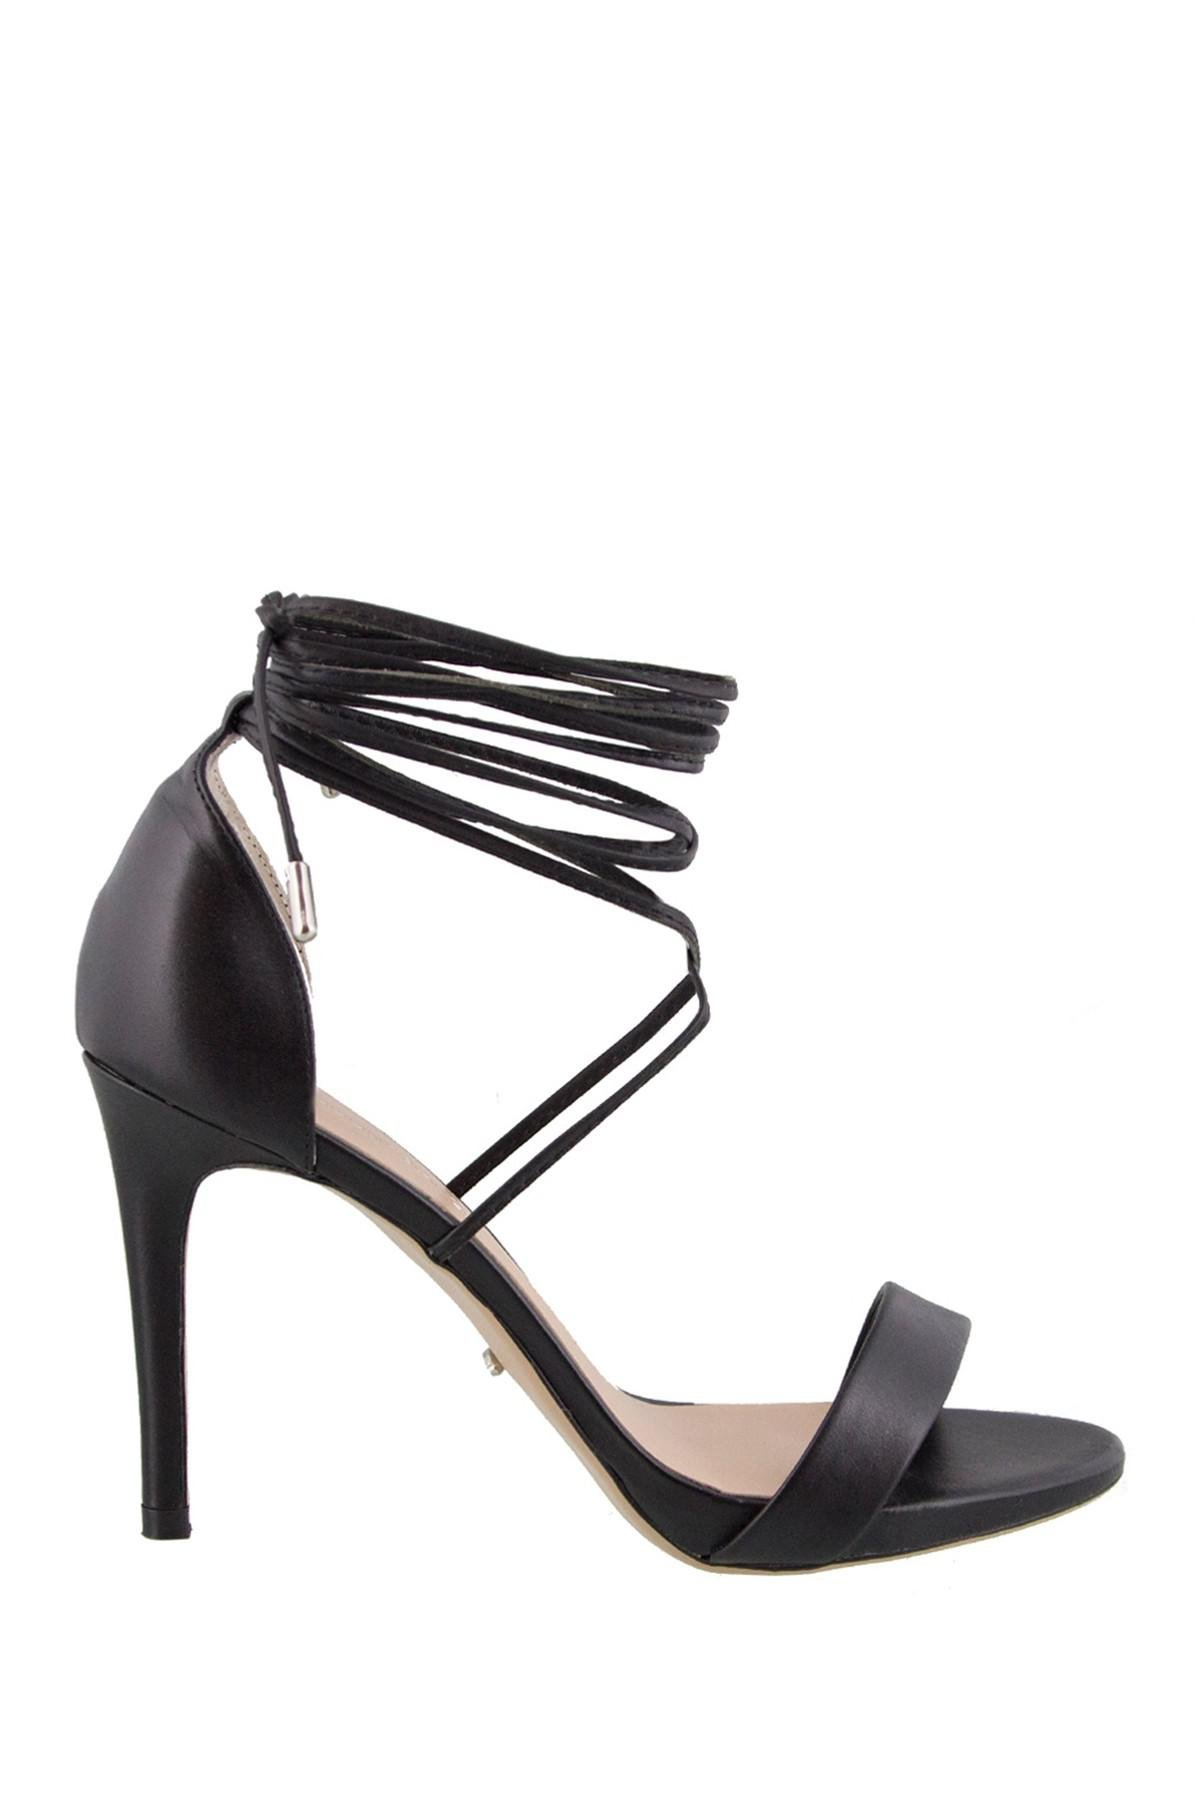 c0d4e724167 Lyst - Tony Bianco Cato Strappy Heeled Sandals in Black